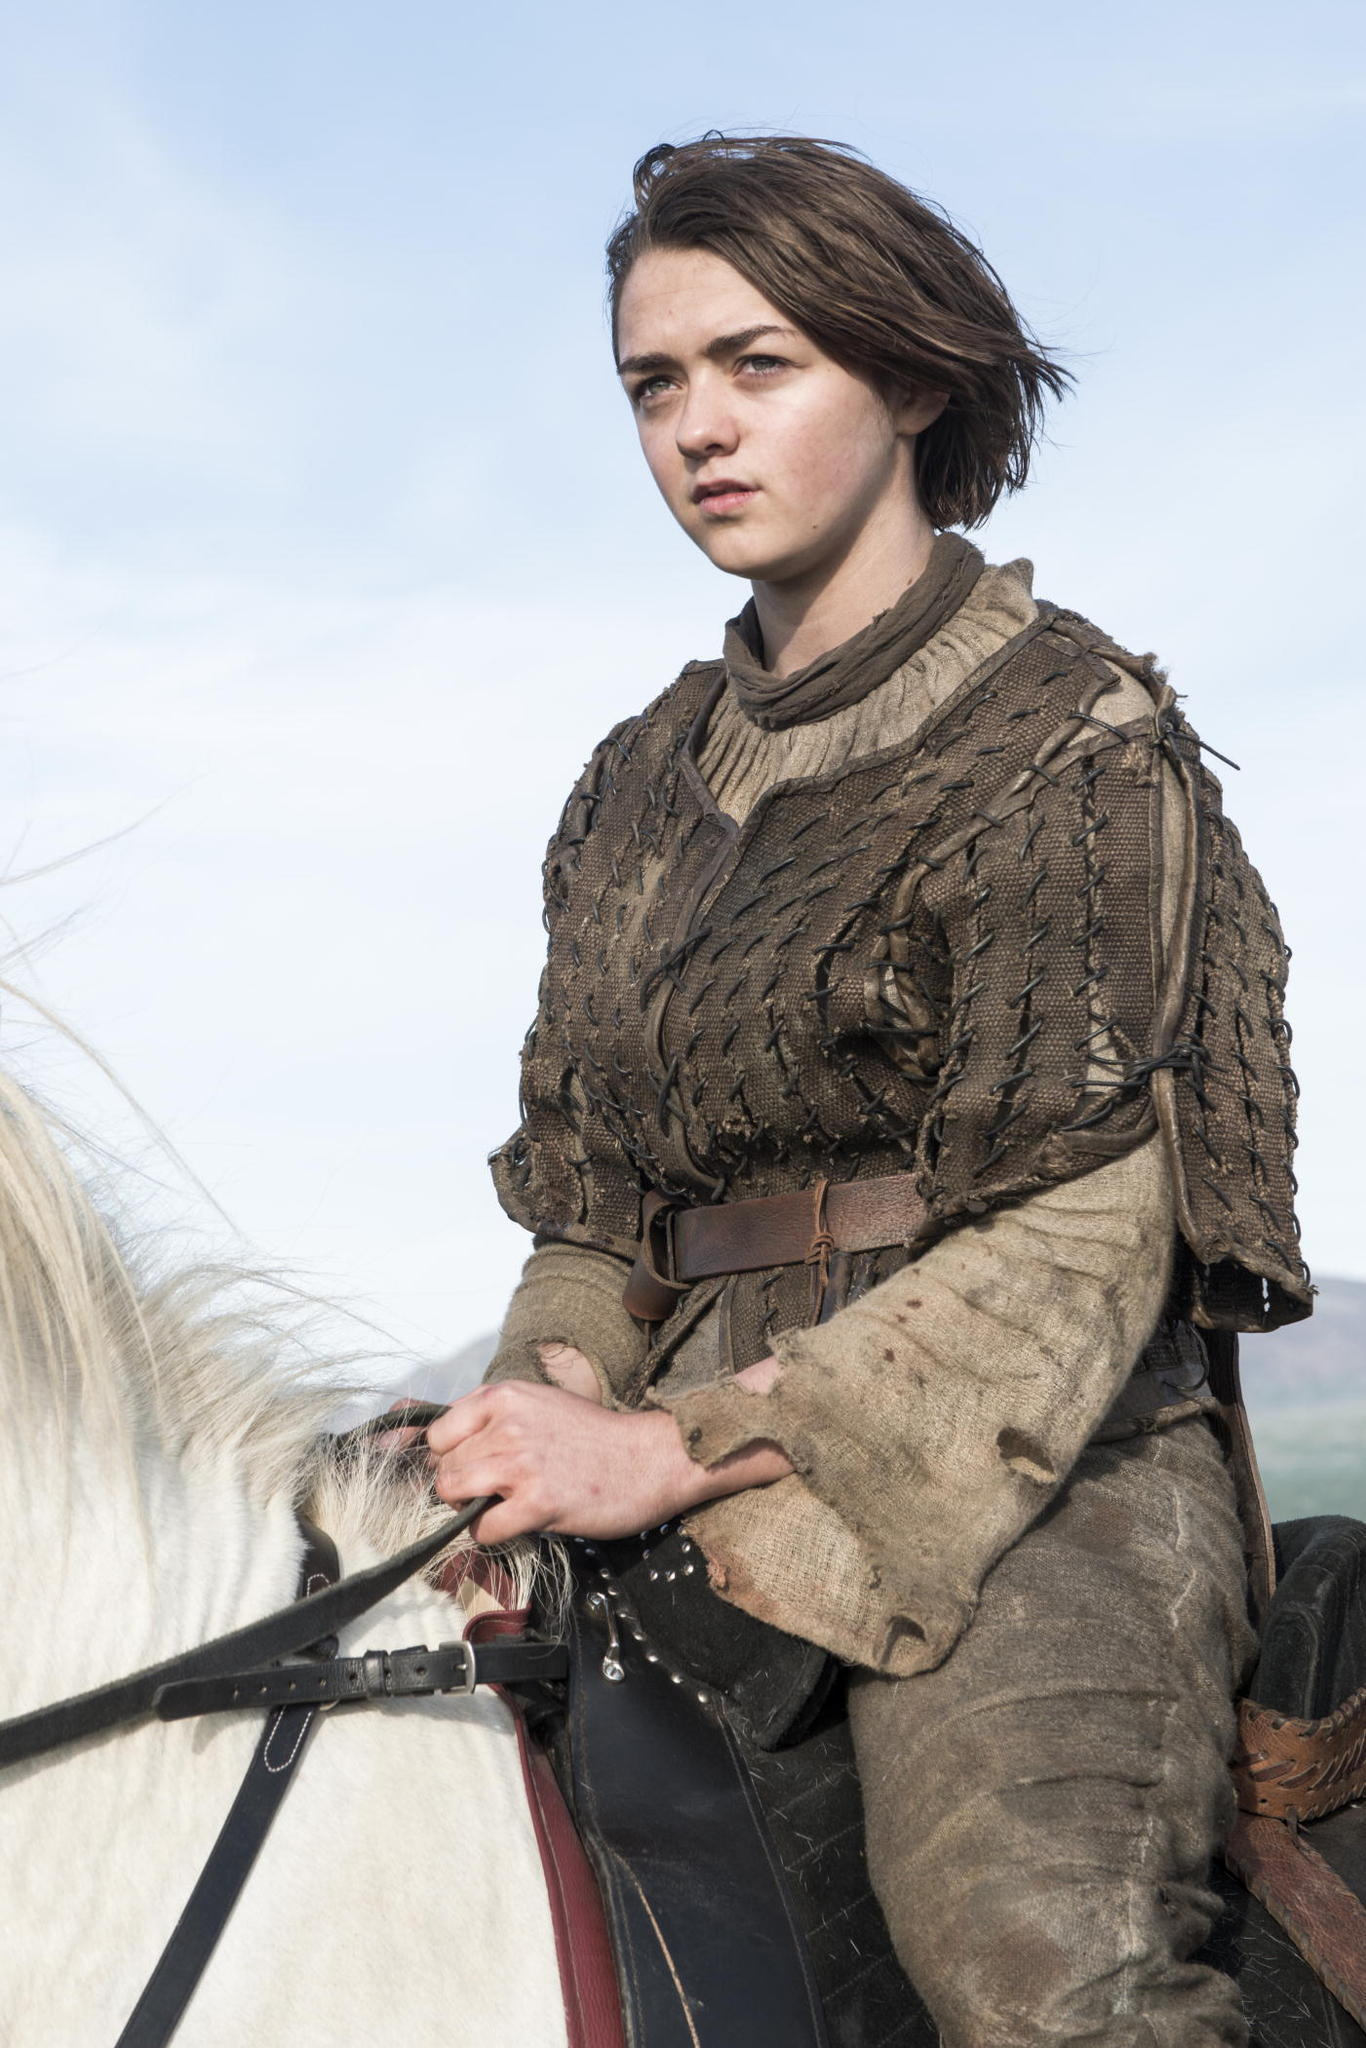 Game of Thrones: HBO Releases Final Season Teaser; One